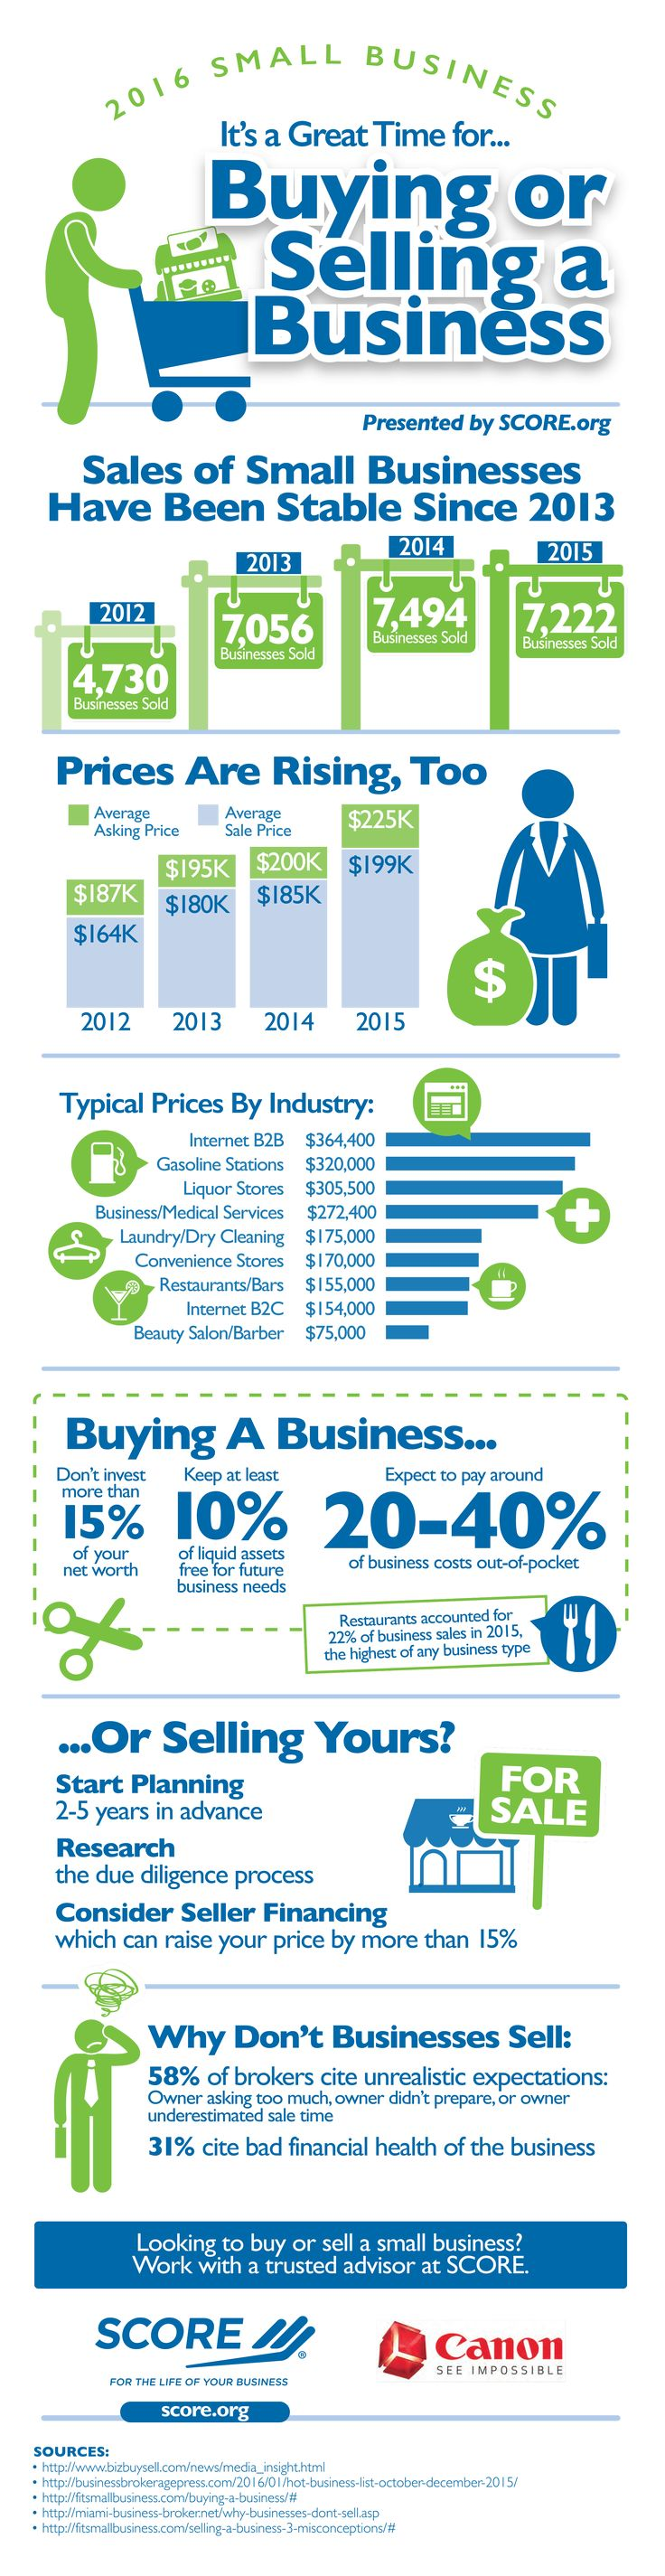 Buying or Selling a Business (Infographic)